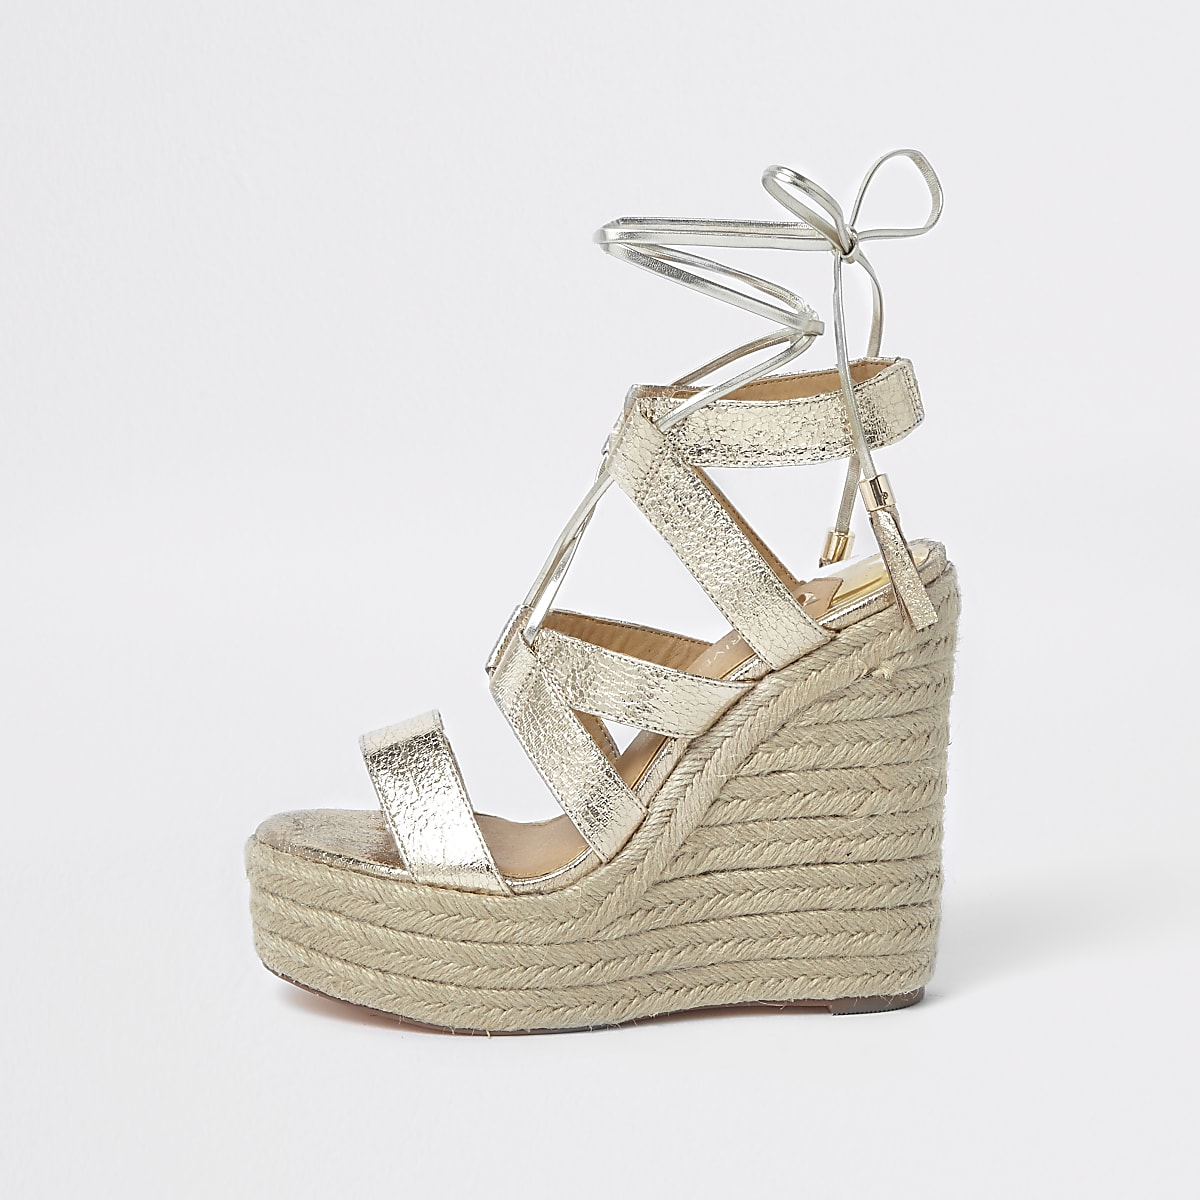 b8c557c0a Gold metallic tie-up espadrille wedges - Sandals - Shoes   Boots - women